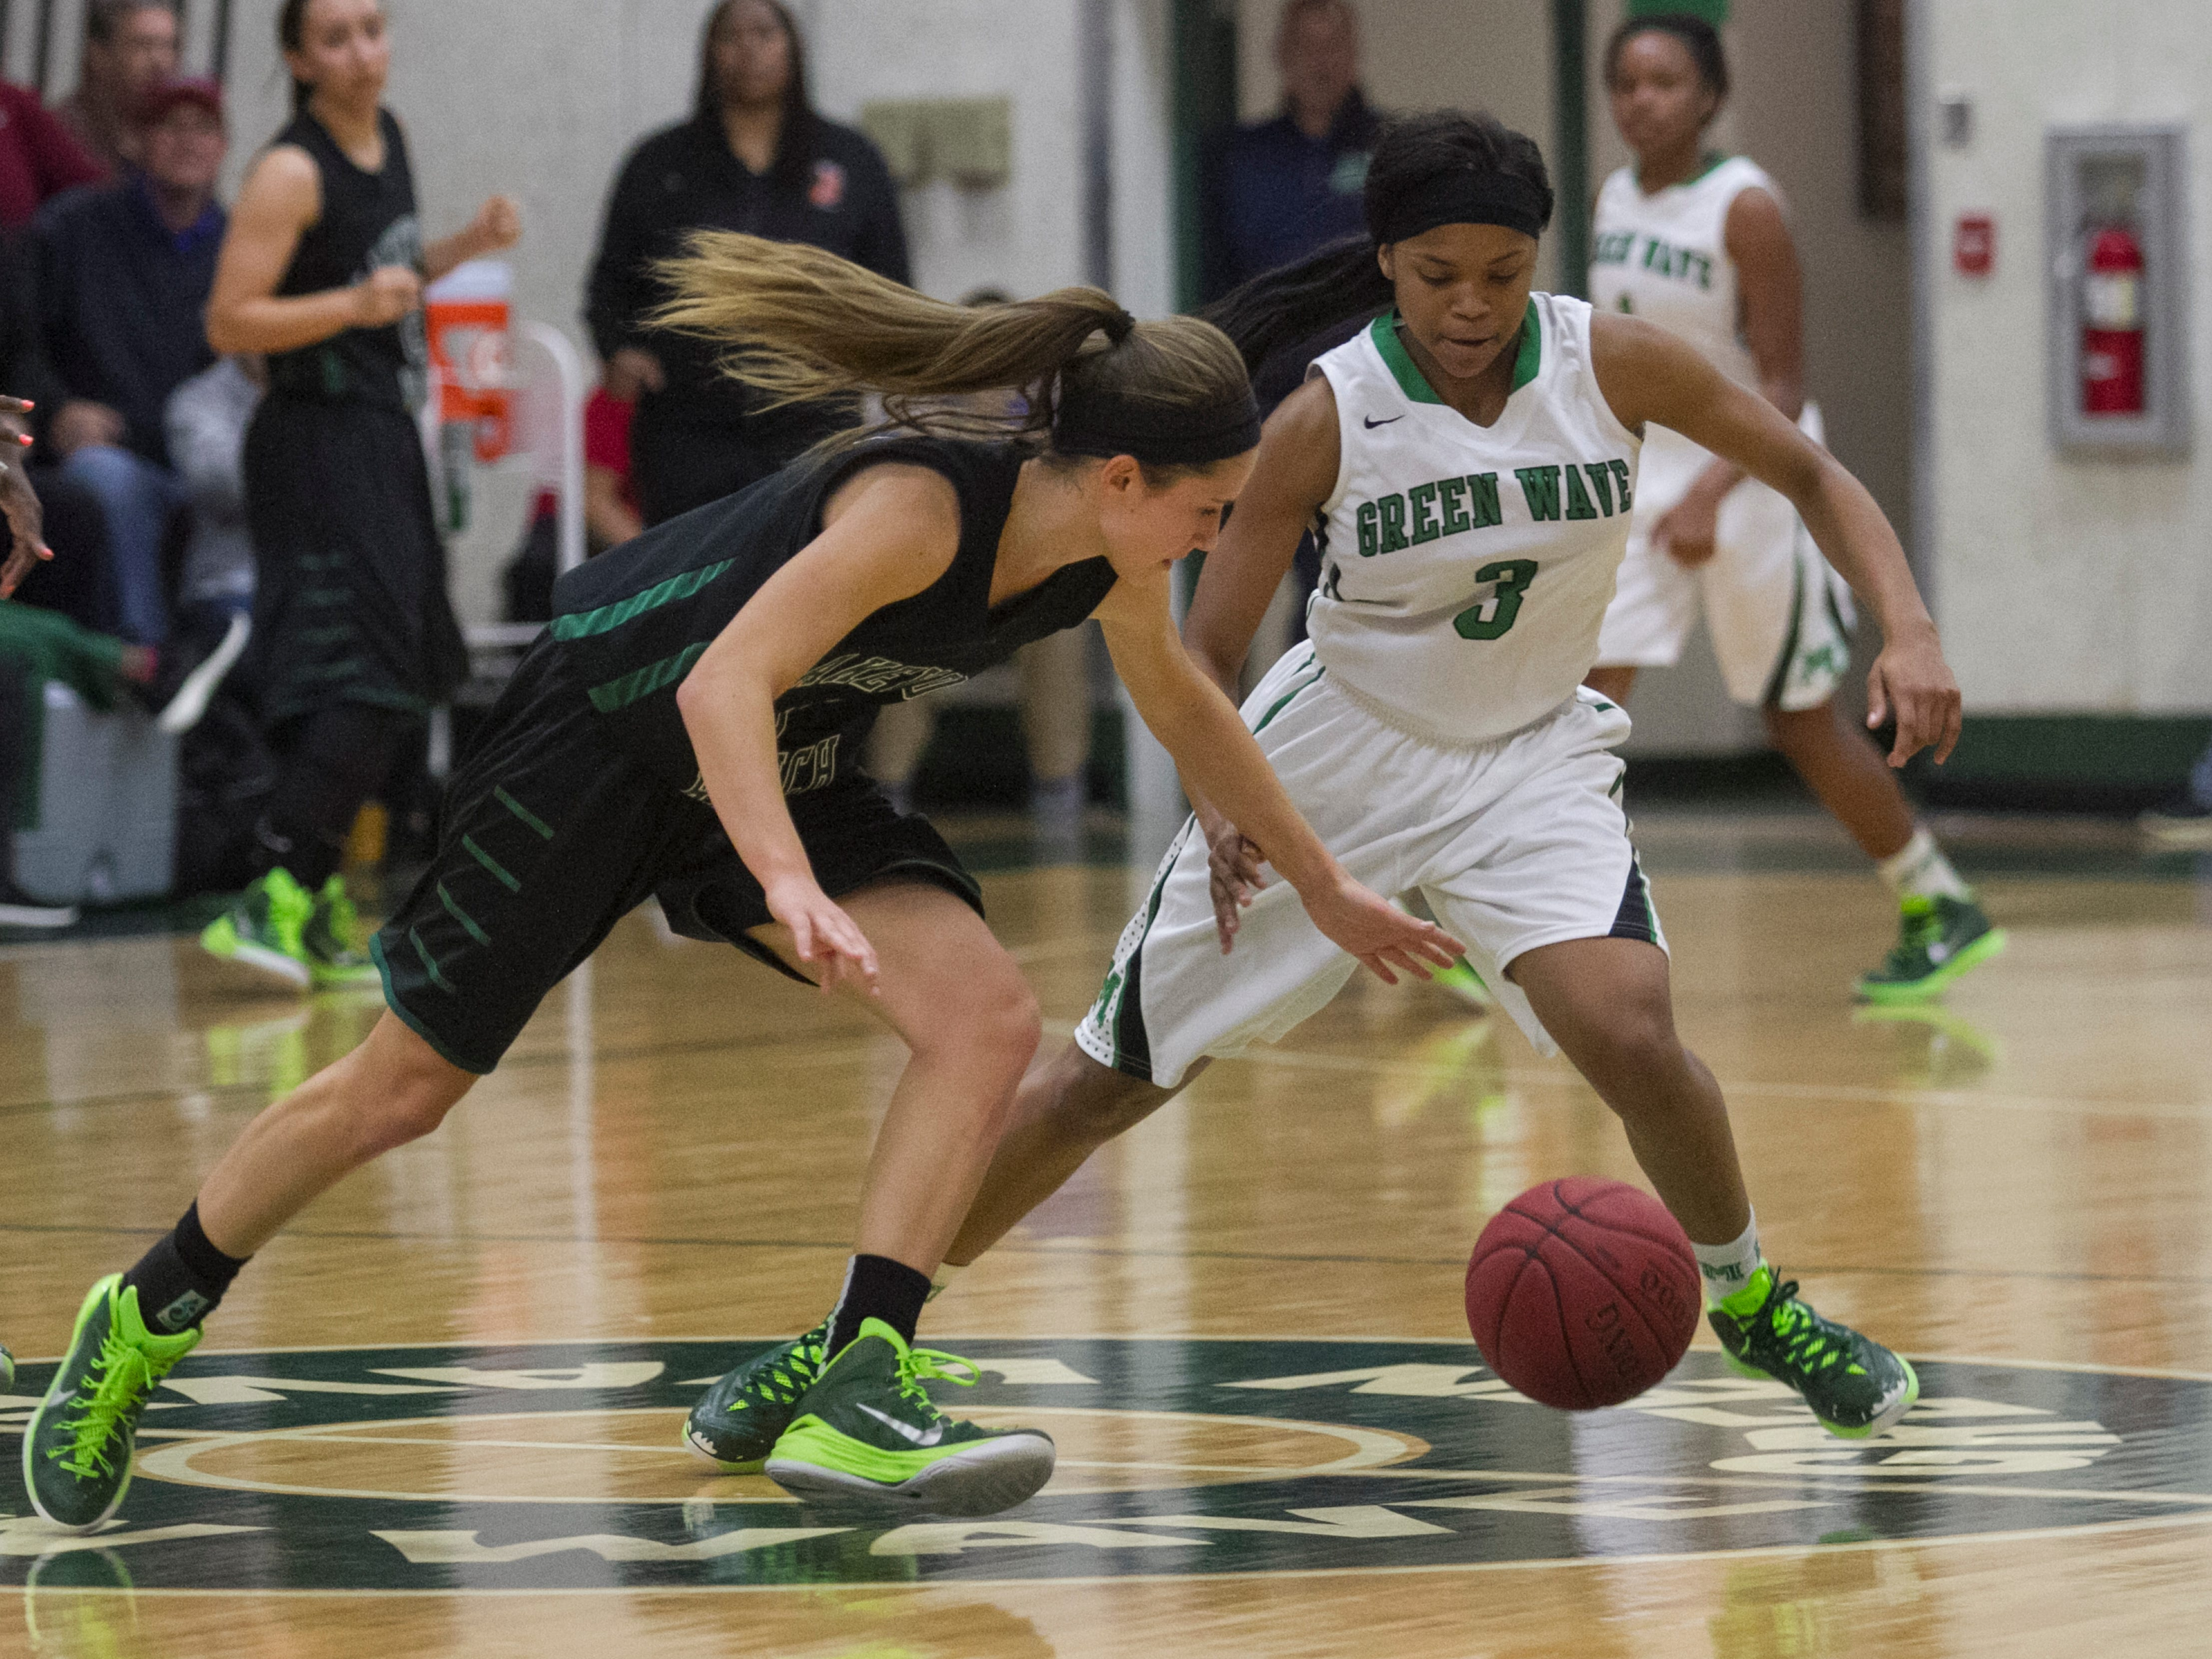 Amanda Inscore / News-PressDestanni Henderson of Fort Myers steals the ball from Lakewood Ranch's Kaitlyn Scully in Saturday's girls regional basketball finals at Fort Myers High School. Destanni Henderson of Fort Myers steals the ball from Lakewood Ranch's Kaitlyn Scully in the girls regional basketball finals on Saturday, February 14, 2015, at Fort Myers High School.